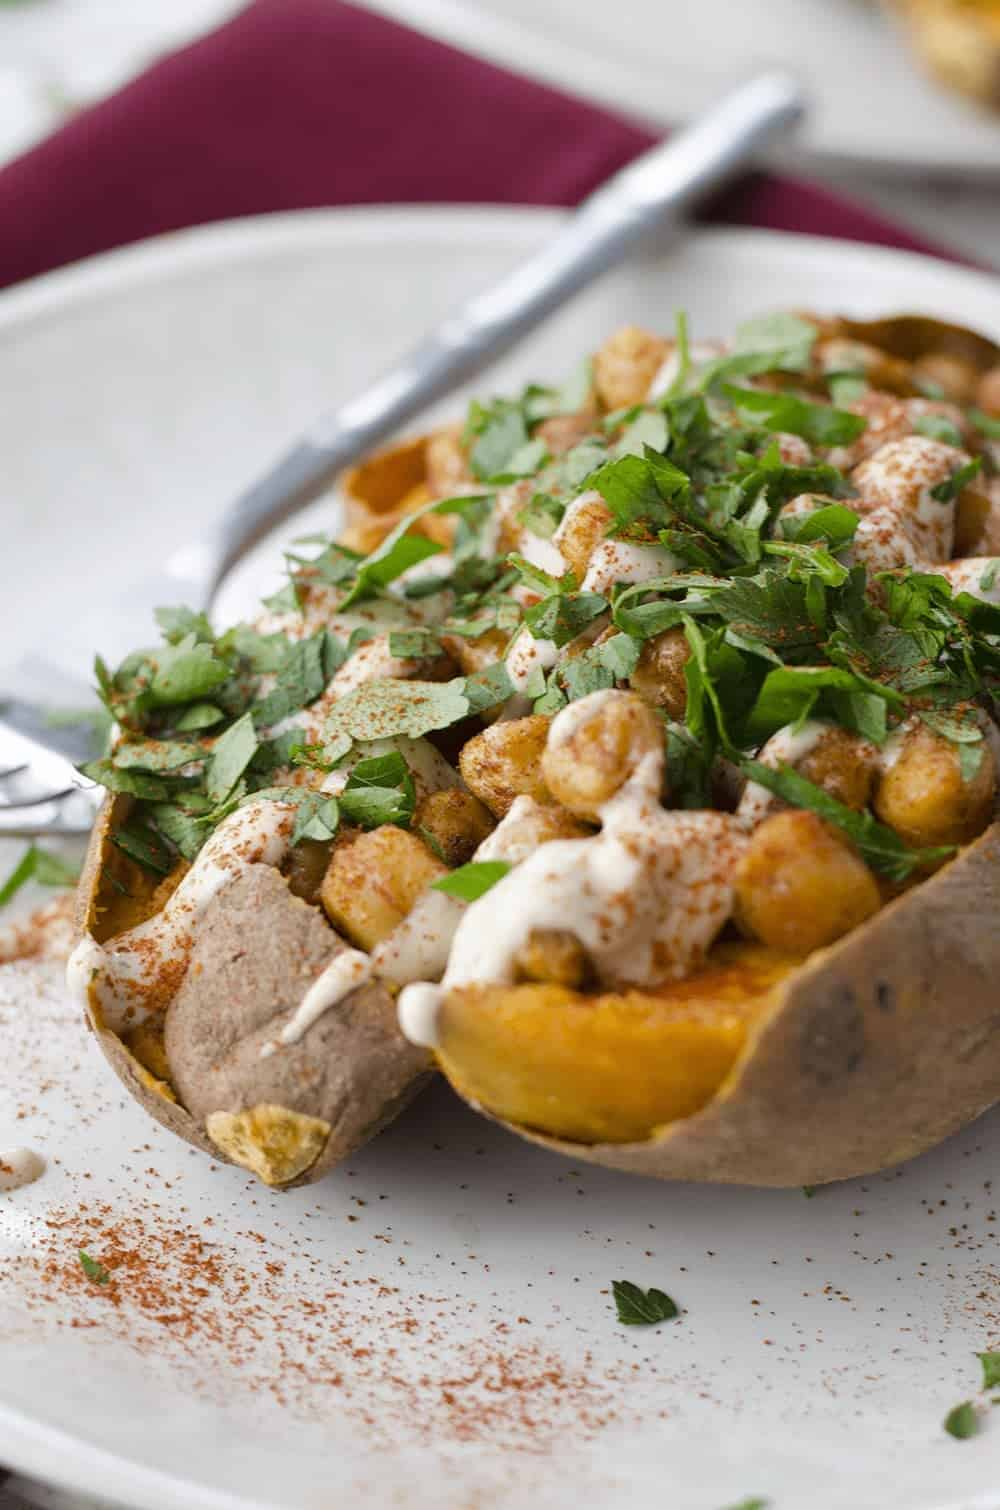 Vegan stuffed sweet potatoes! Roasted sweet potatoes stuffed with spiced chickpeas, garlic tahini sauce and fresh herbs. Gluten-free. | www.delishknowledge.com